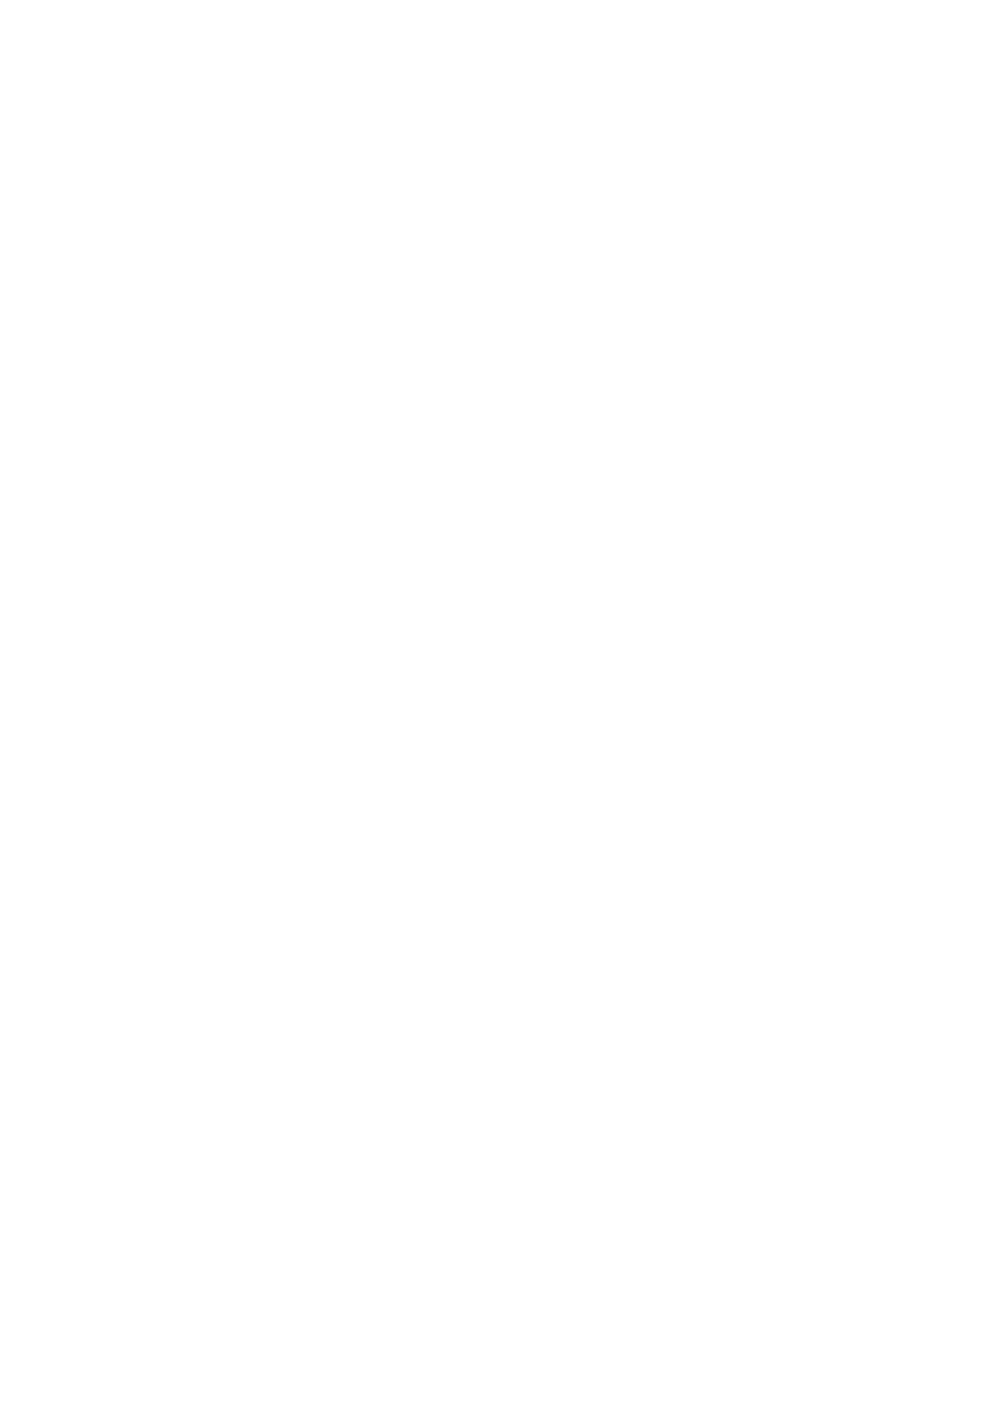 hearing protection_circle icon white outline.png